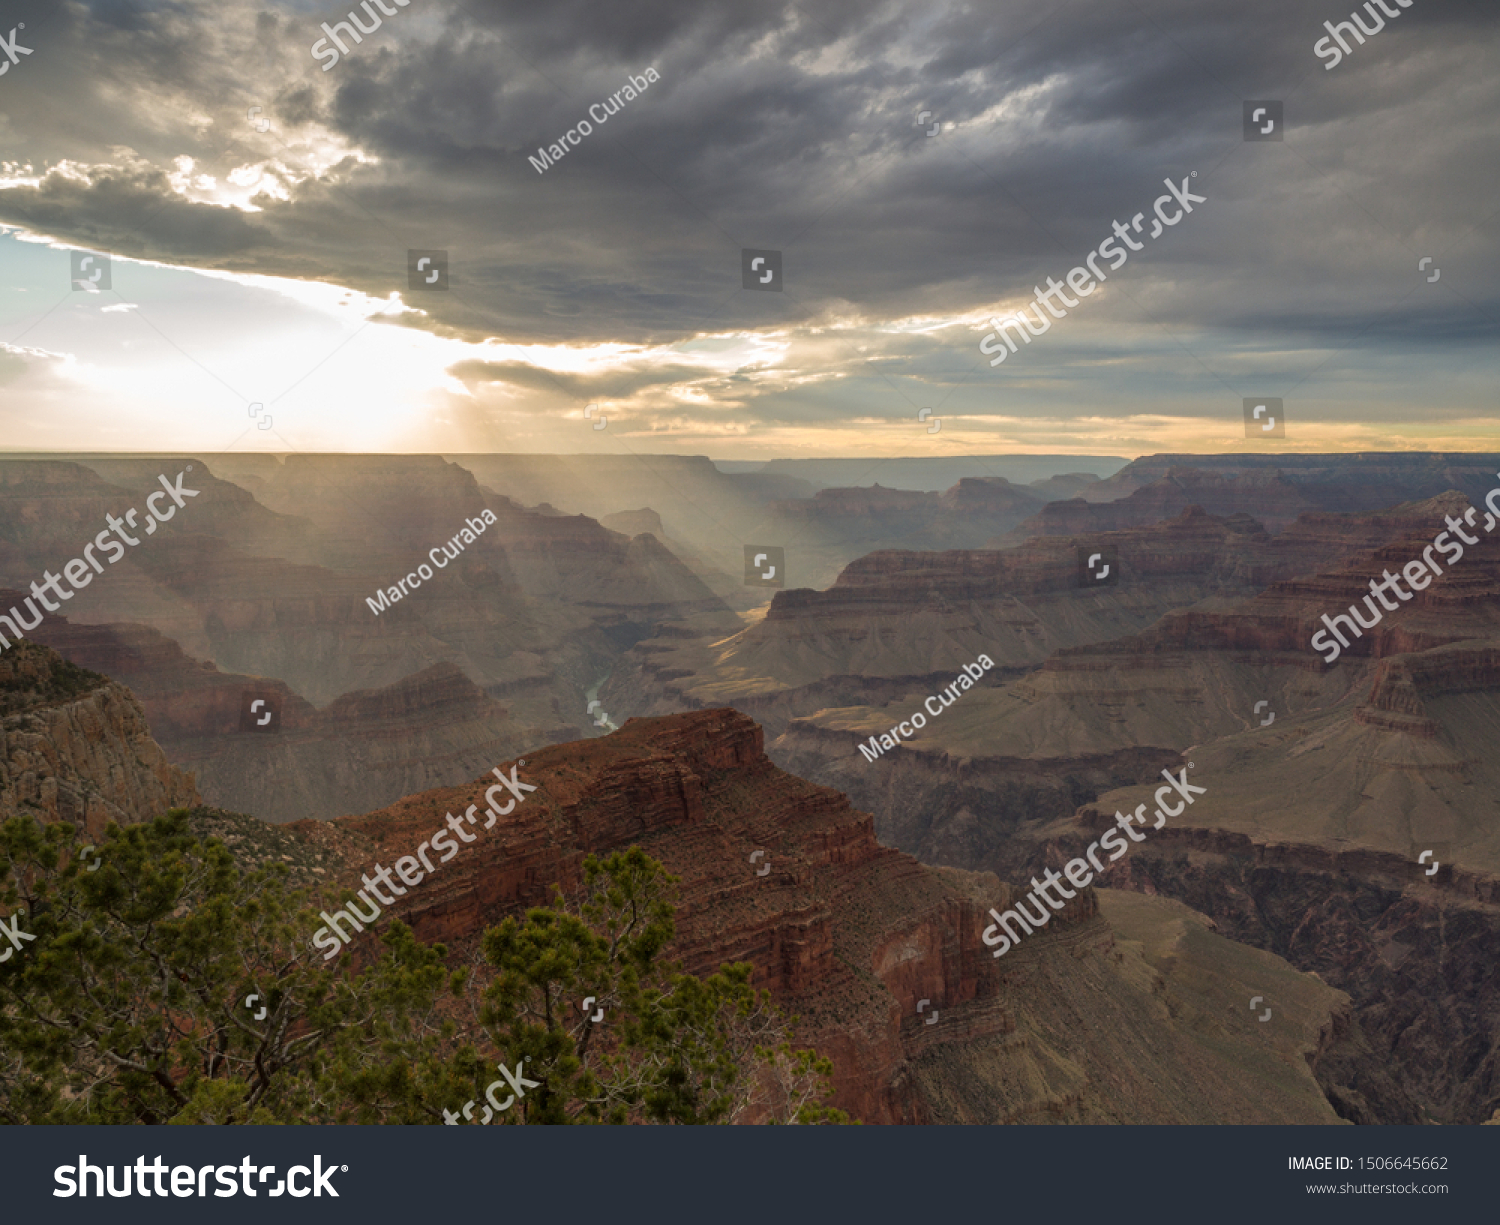 stock-photo-sunset-at-grand-canyon-with-